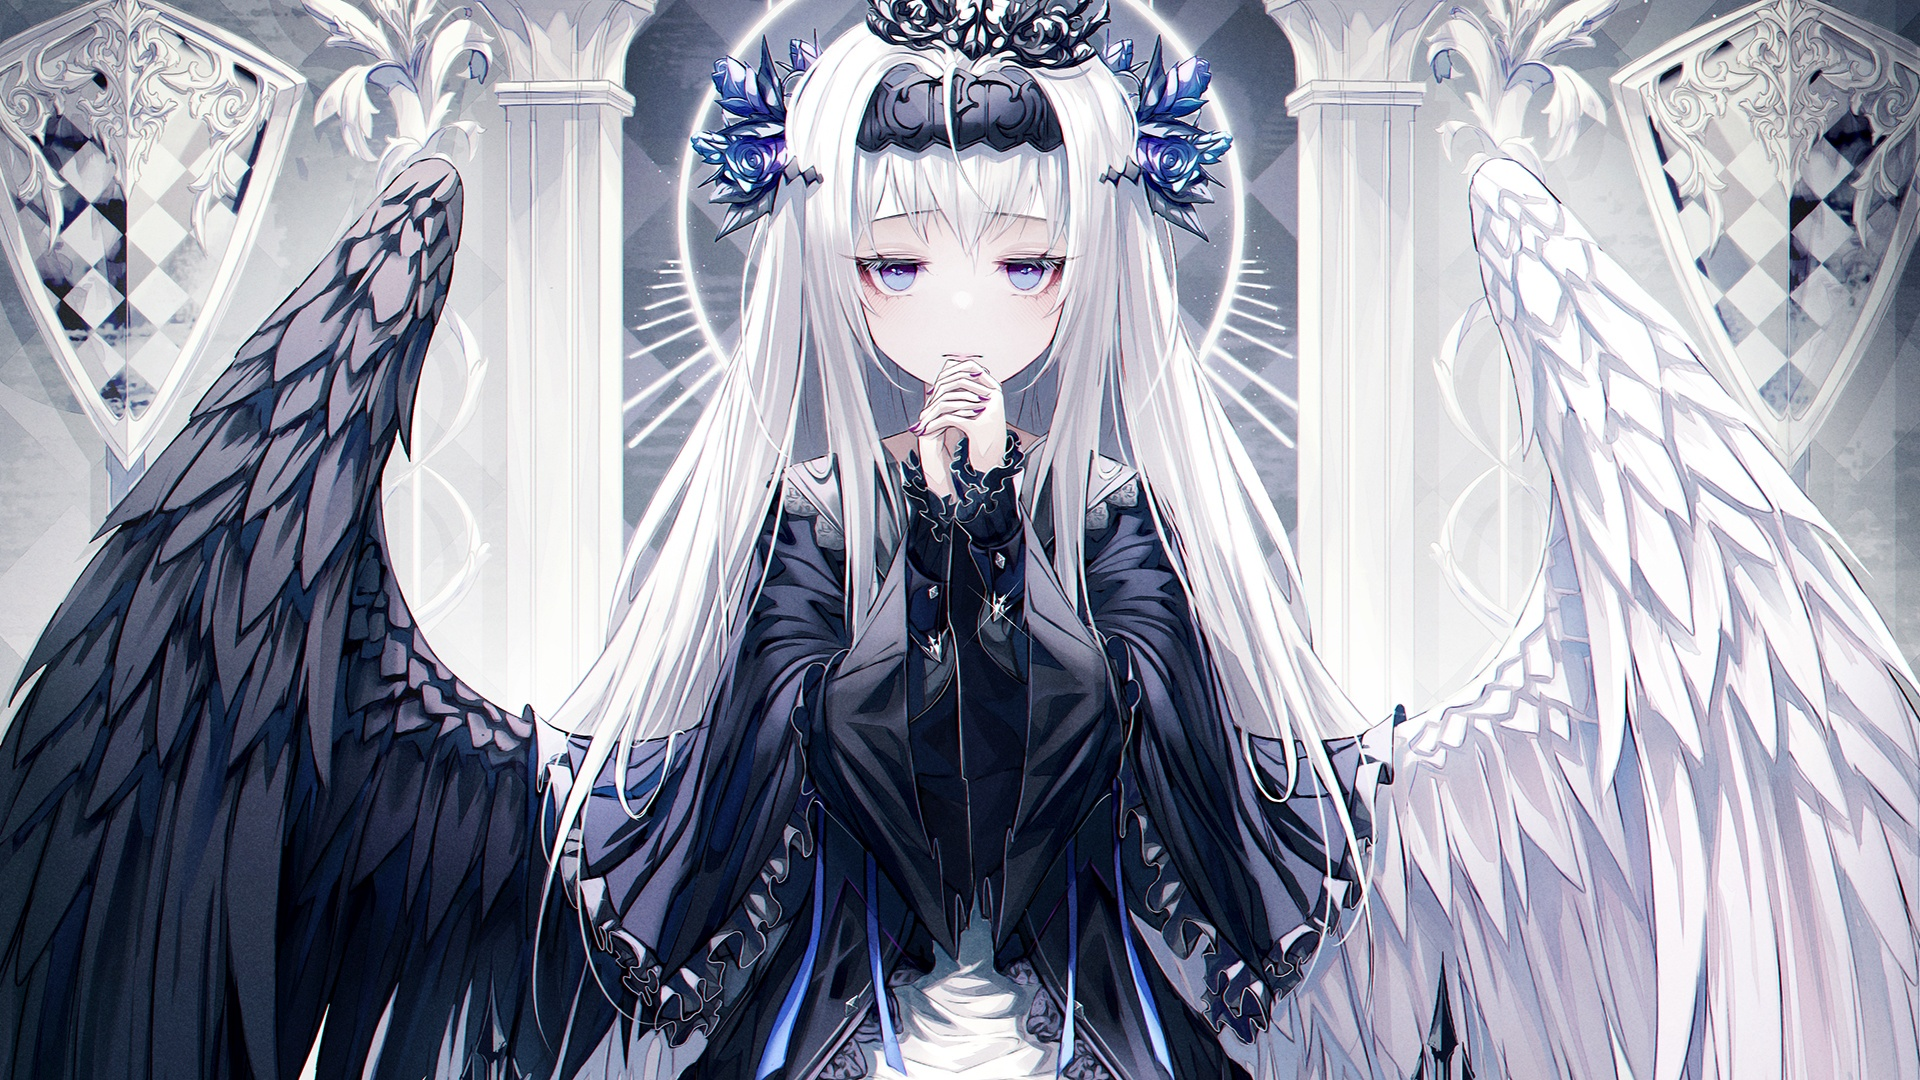 Anime Gothic Girl free picture